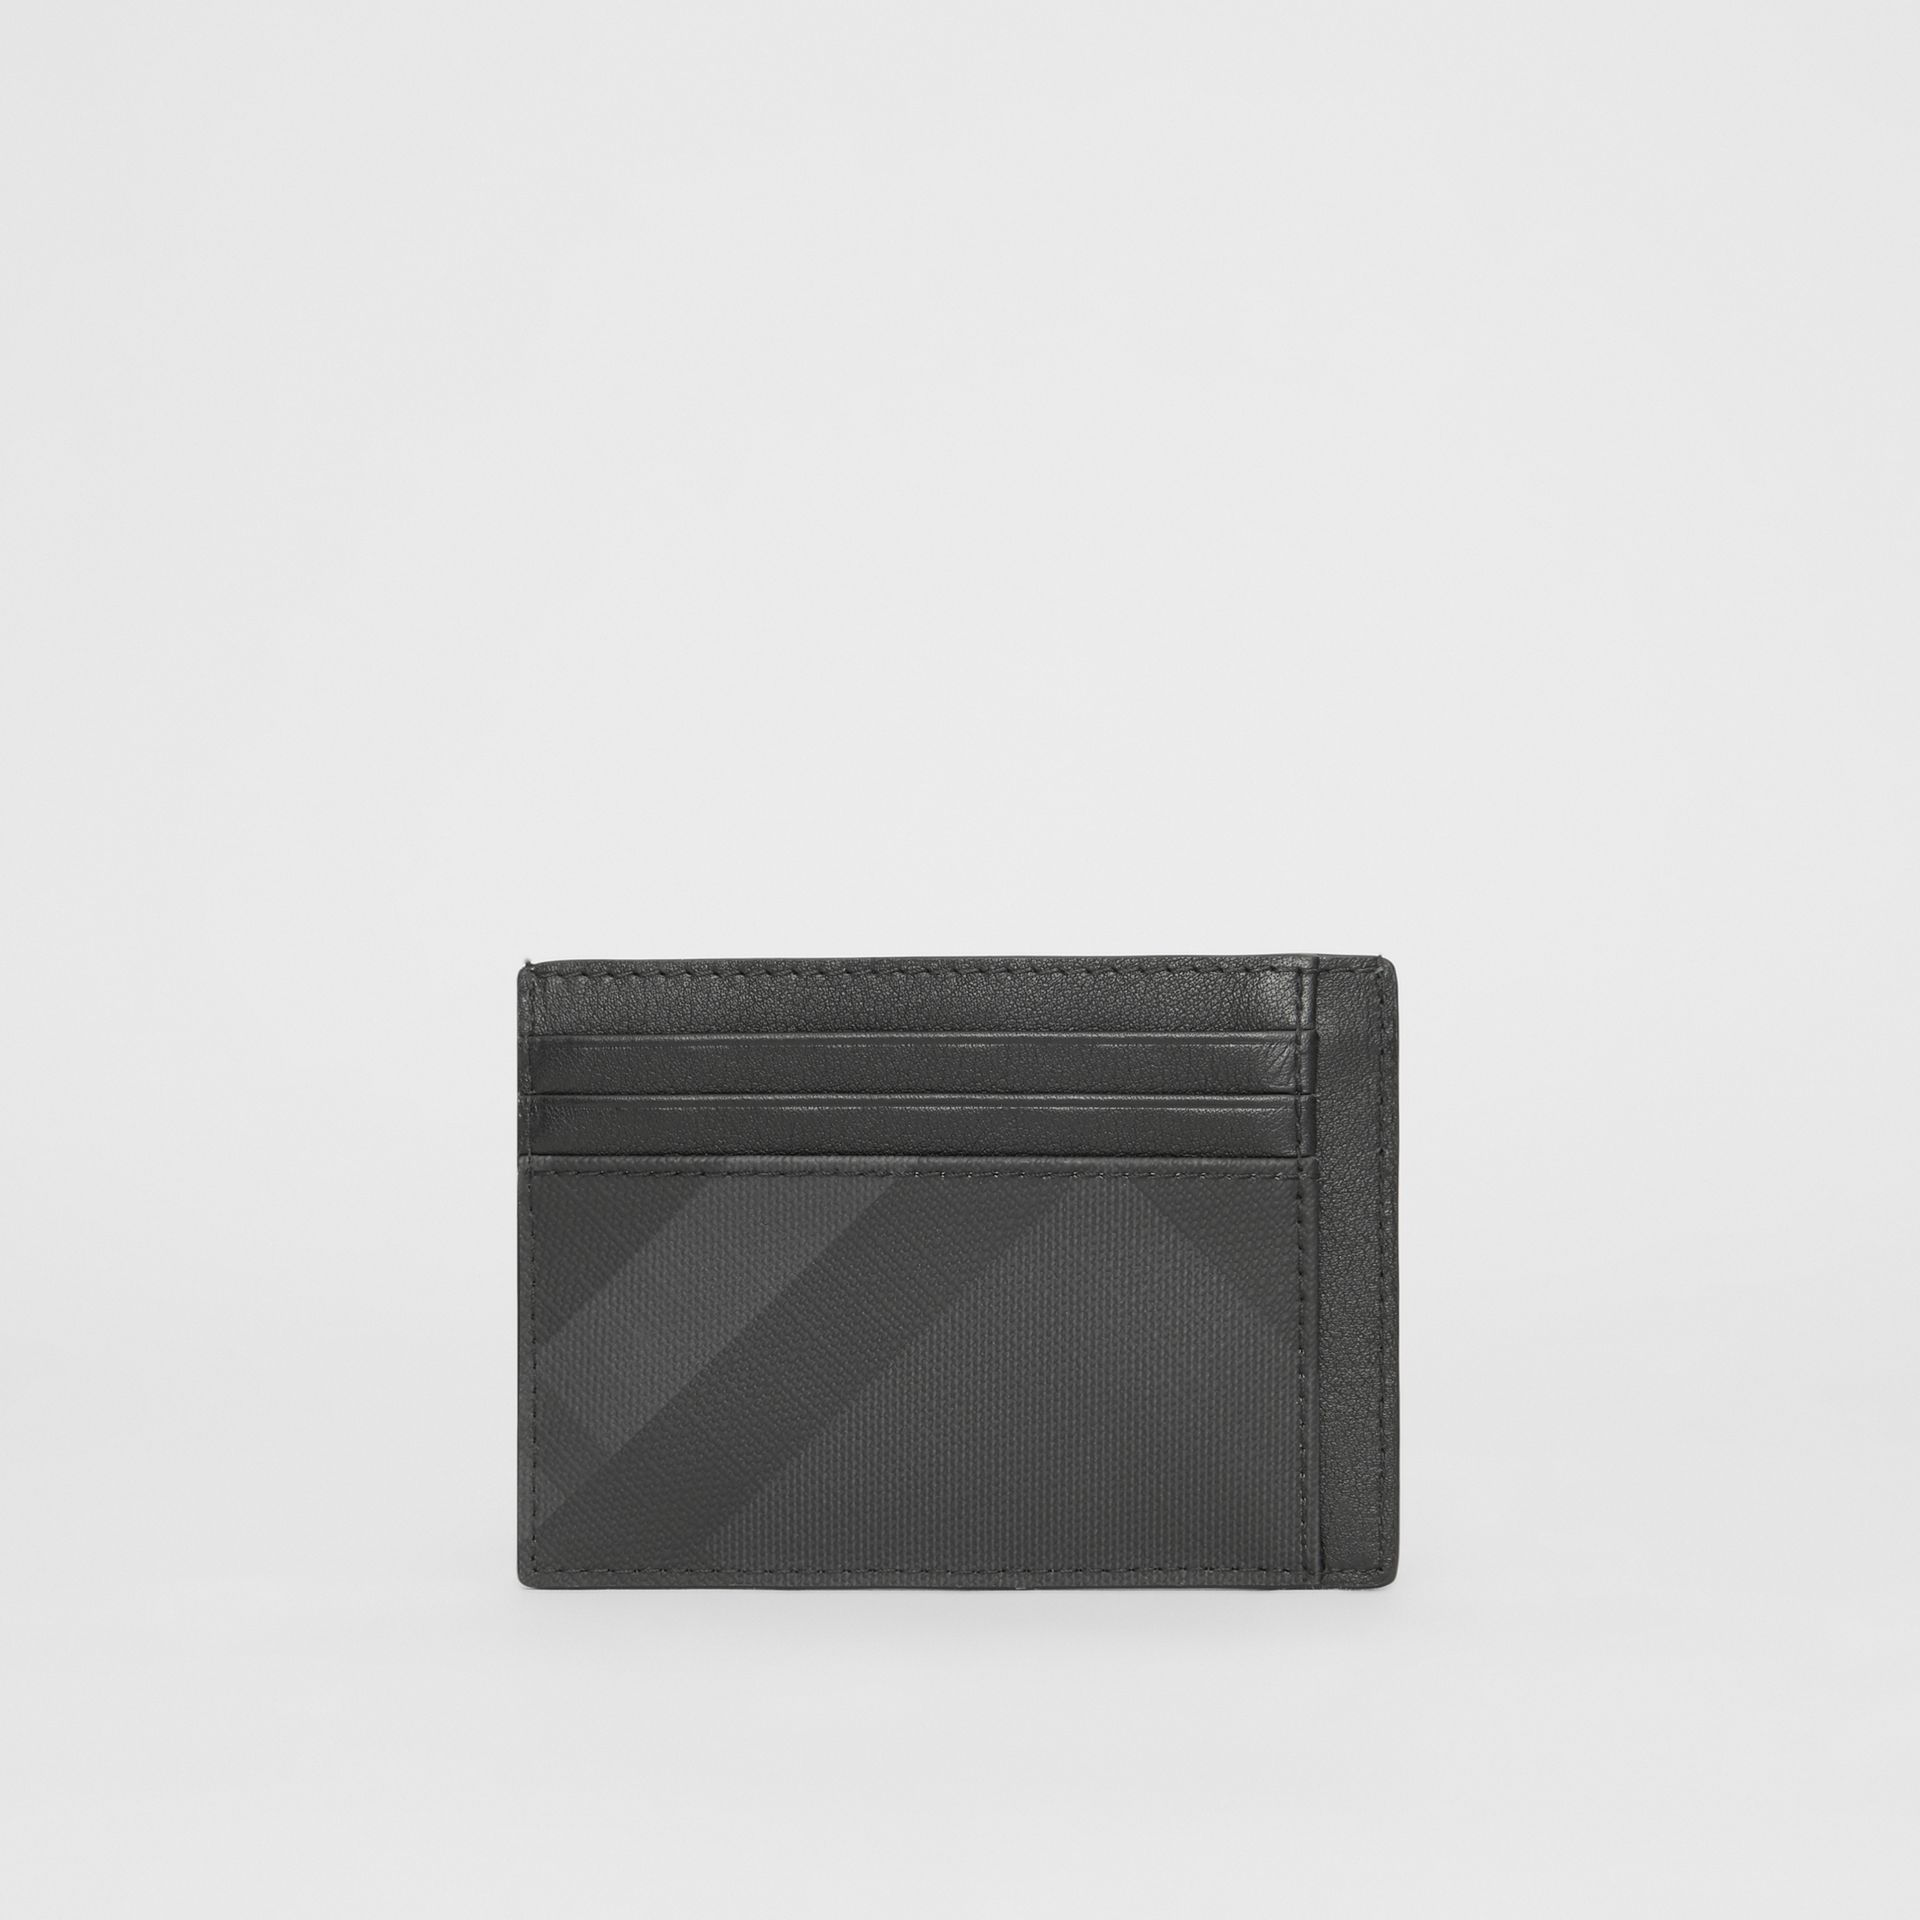 London Check and Leather Card Case in Dark Charcoal - Men | Burberry Singapore - gallery image 4